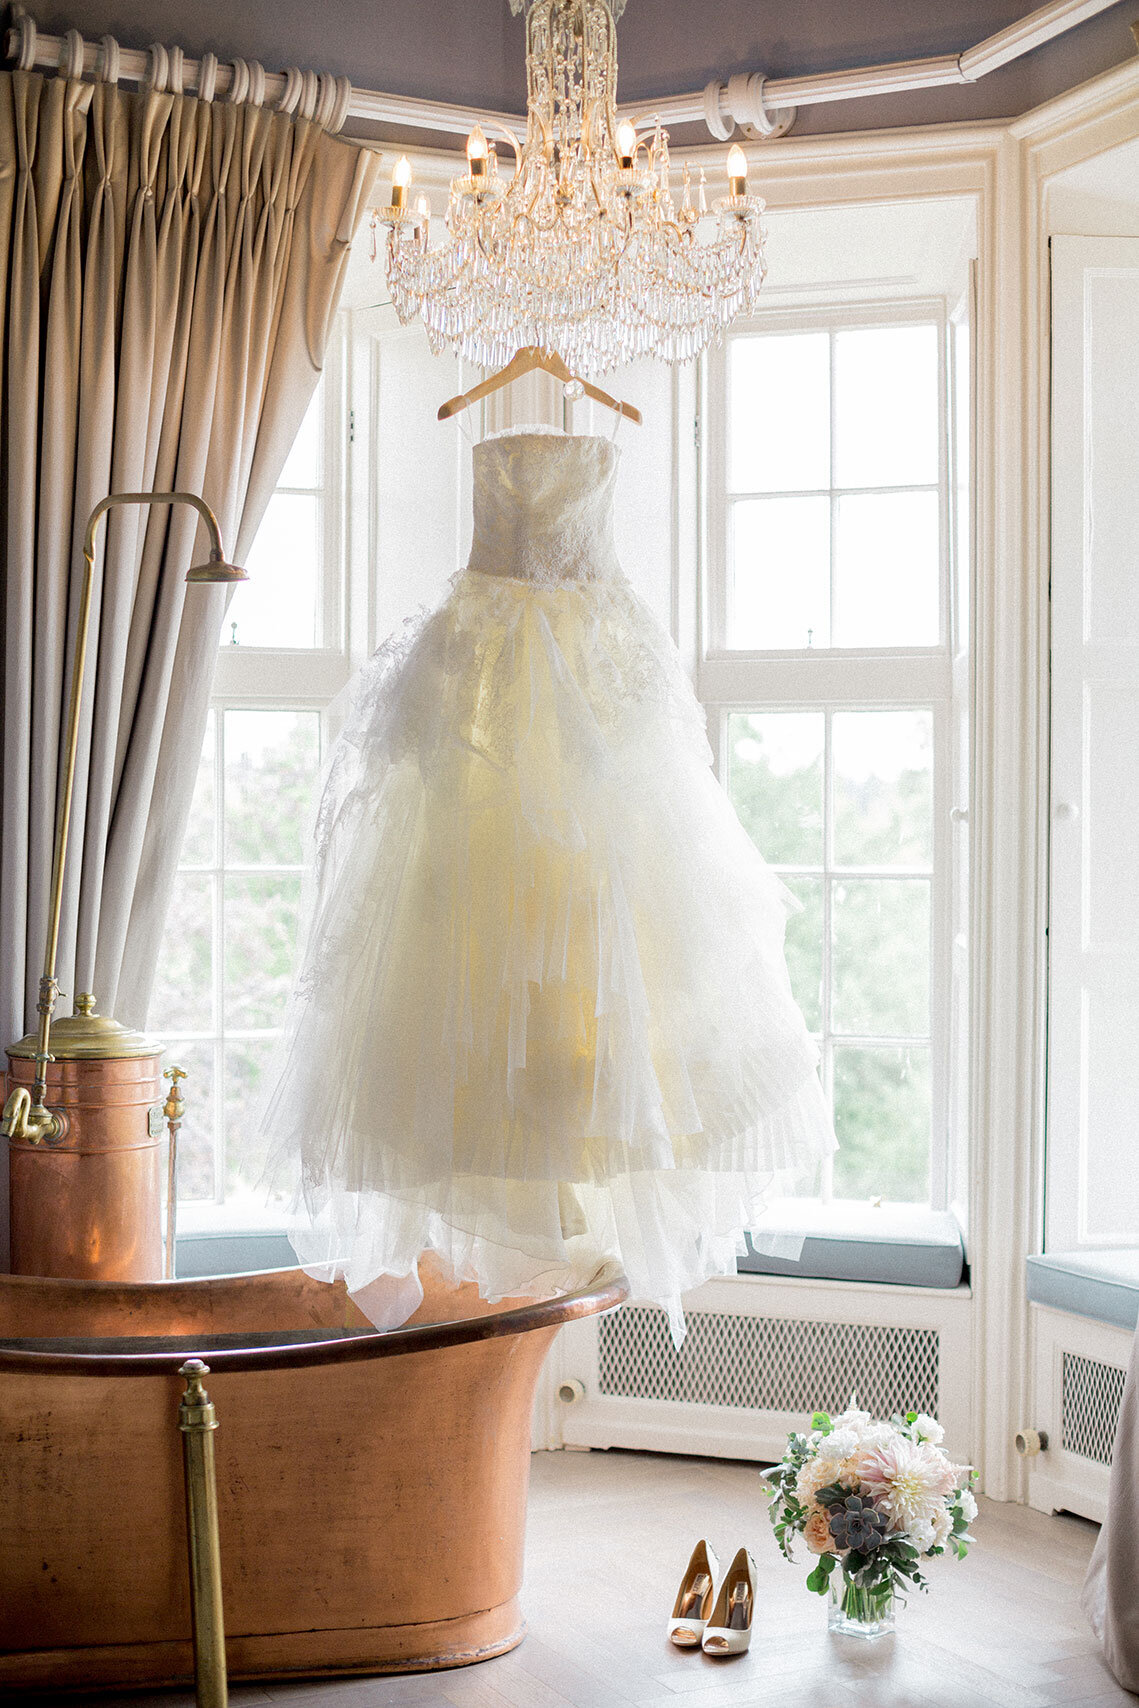 Ireland & US Wedding Planner, dress hanging up in window